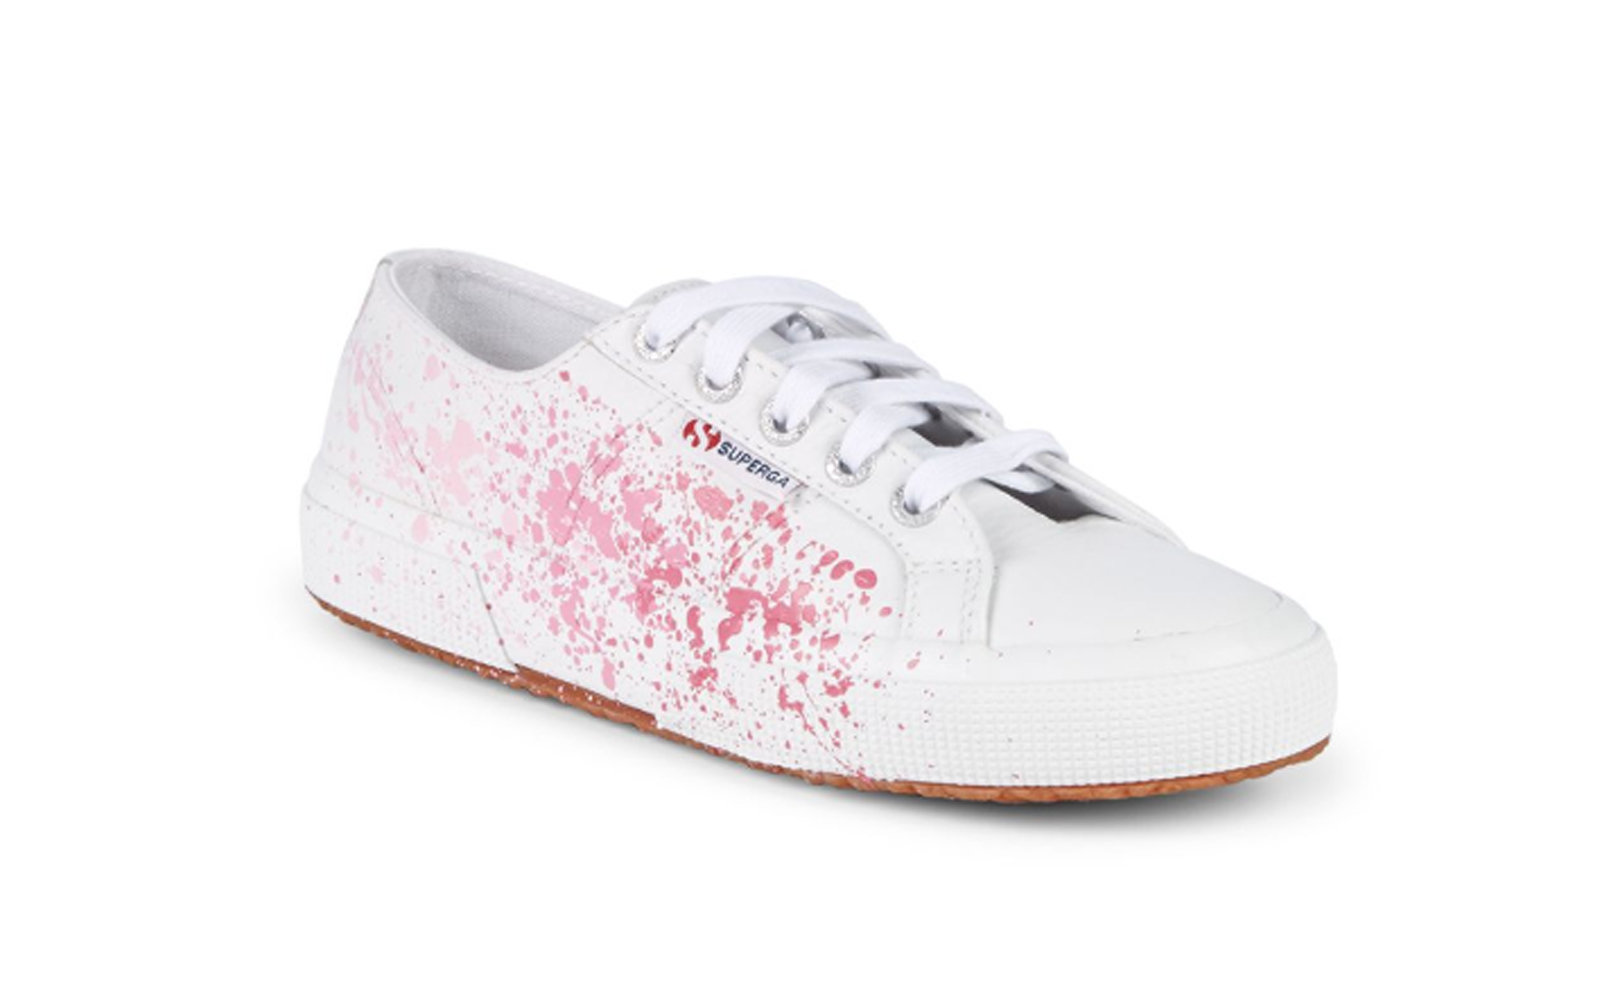 Superga Splatter Leather Sneakers